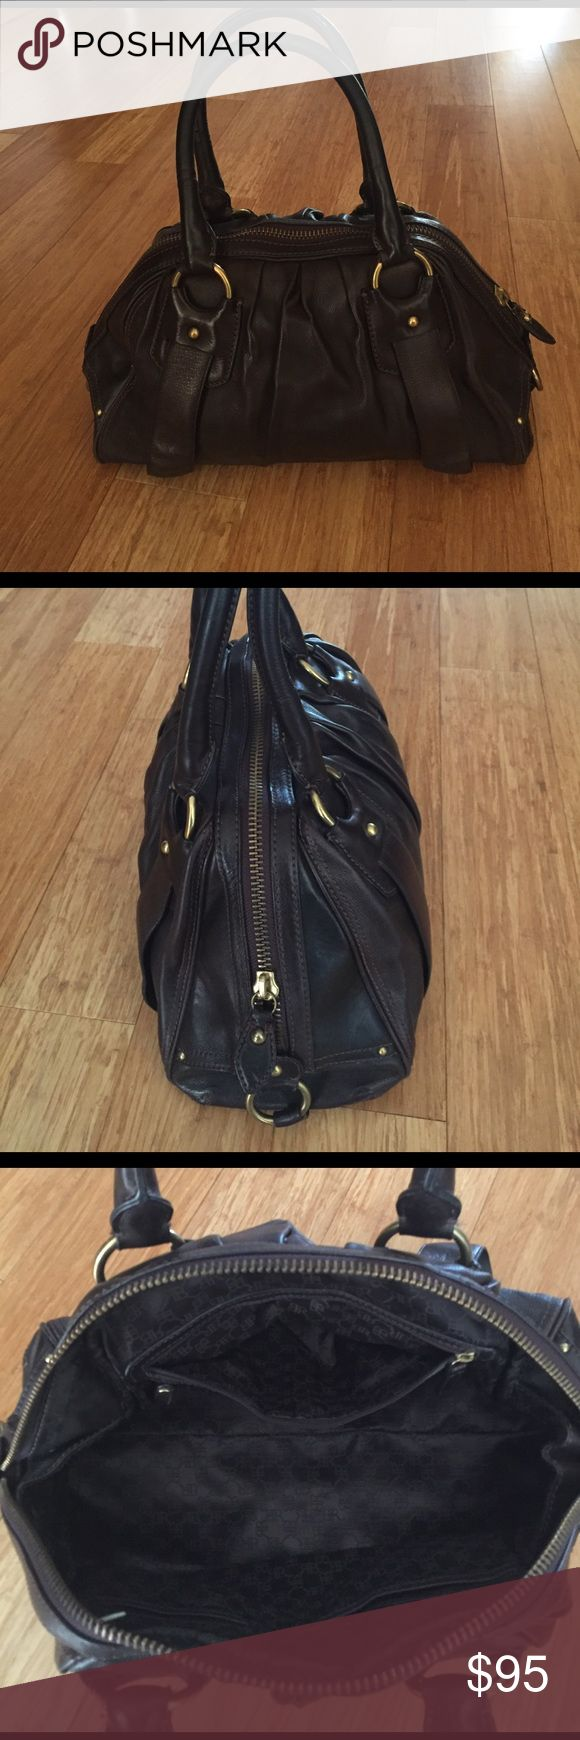 Banana Republic leather handbag This beautiful Banana Republic handbag is made of luxurious high quality dark chocolate leather with bronze hardware. In amazing condition this will be a perfect addition to your collection! Banana Republic Bags